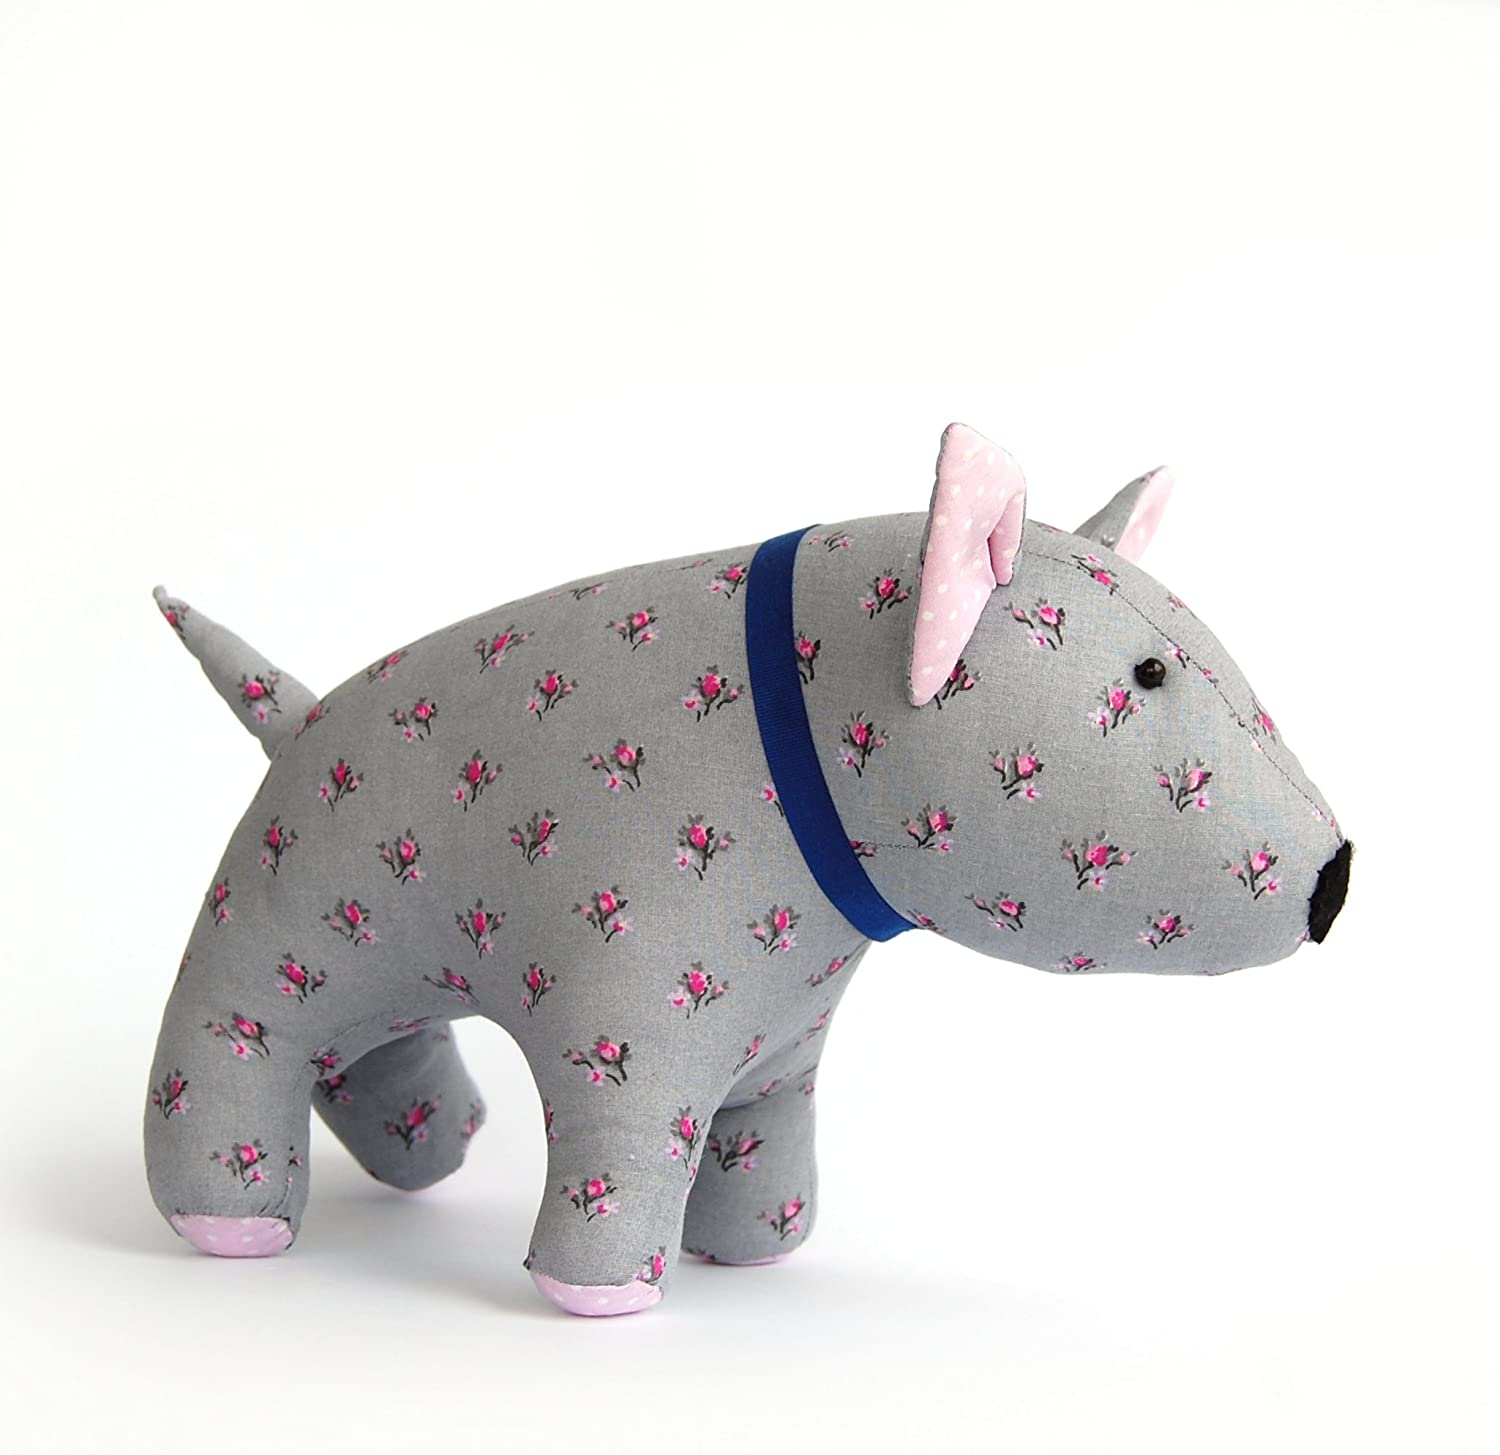 Bull Terrier Lover Gift Stuffed Toy Dog, Vintage cotton, Plush Puppy